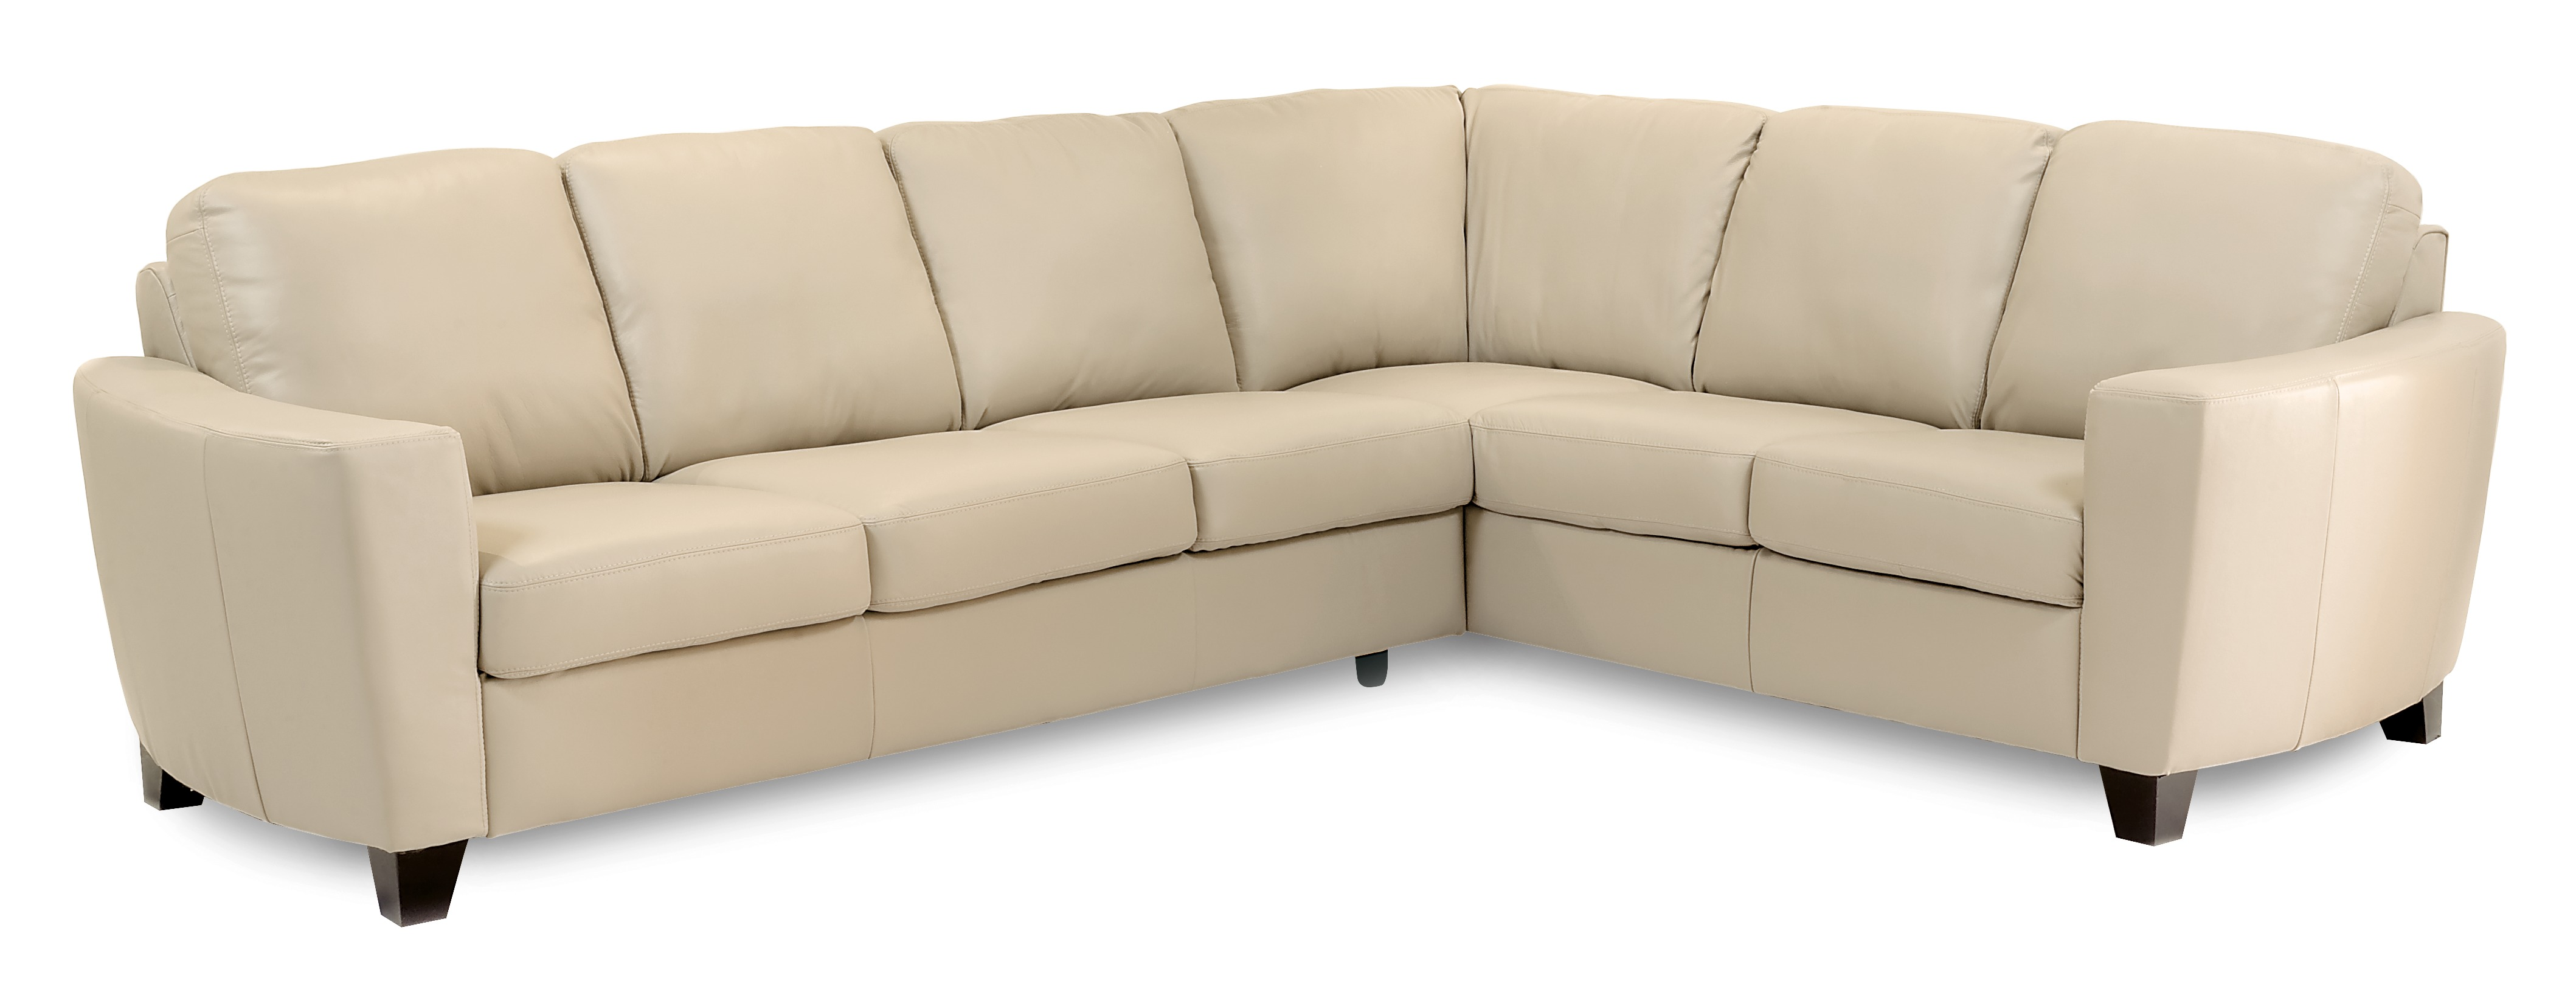 Sofa Foam Leeds Leeds 77328 70328 Sectional 450 Fabrics And Sofas And Sectionals